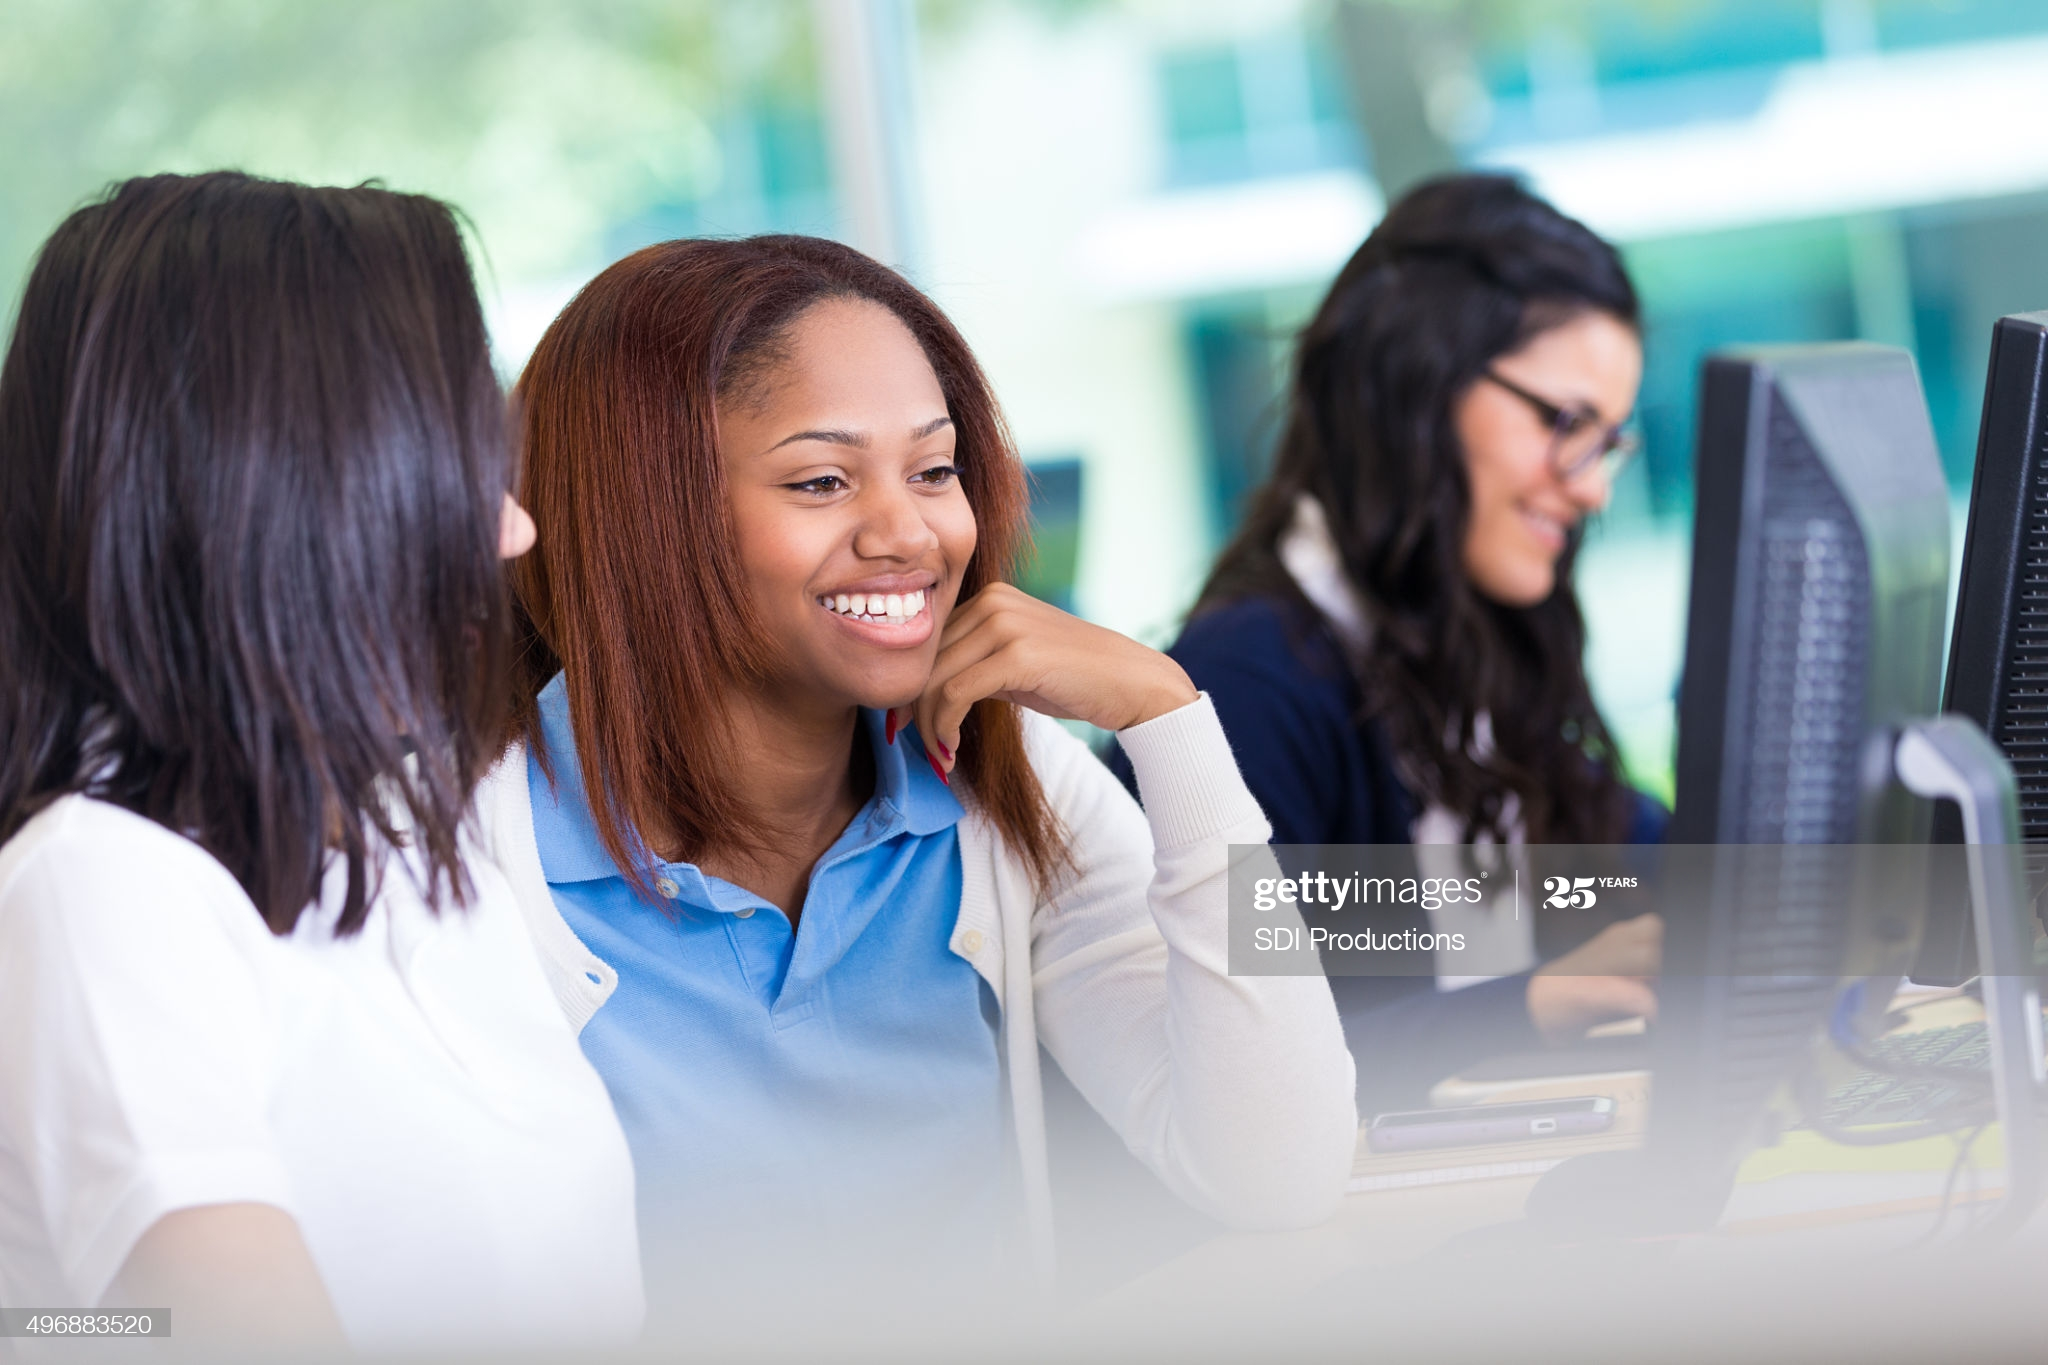 Teenage African American and Hispanic girls are working on assignment together in private high school computer lab classroom. Students are looking at computer monitor and smiling. They are wearing private school uniforms.